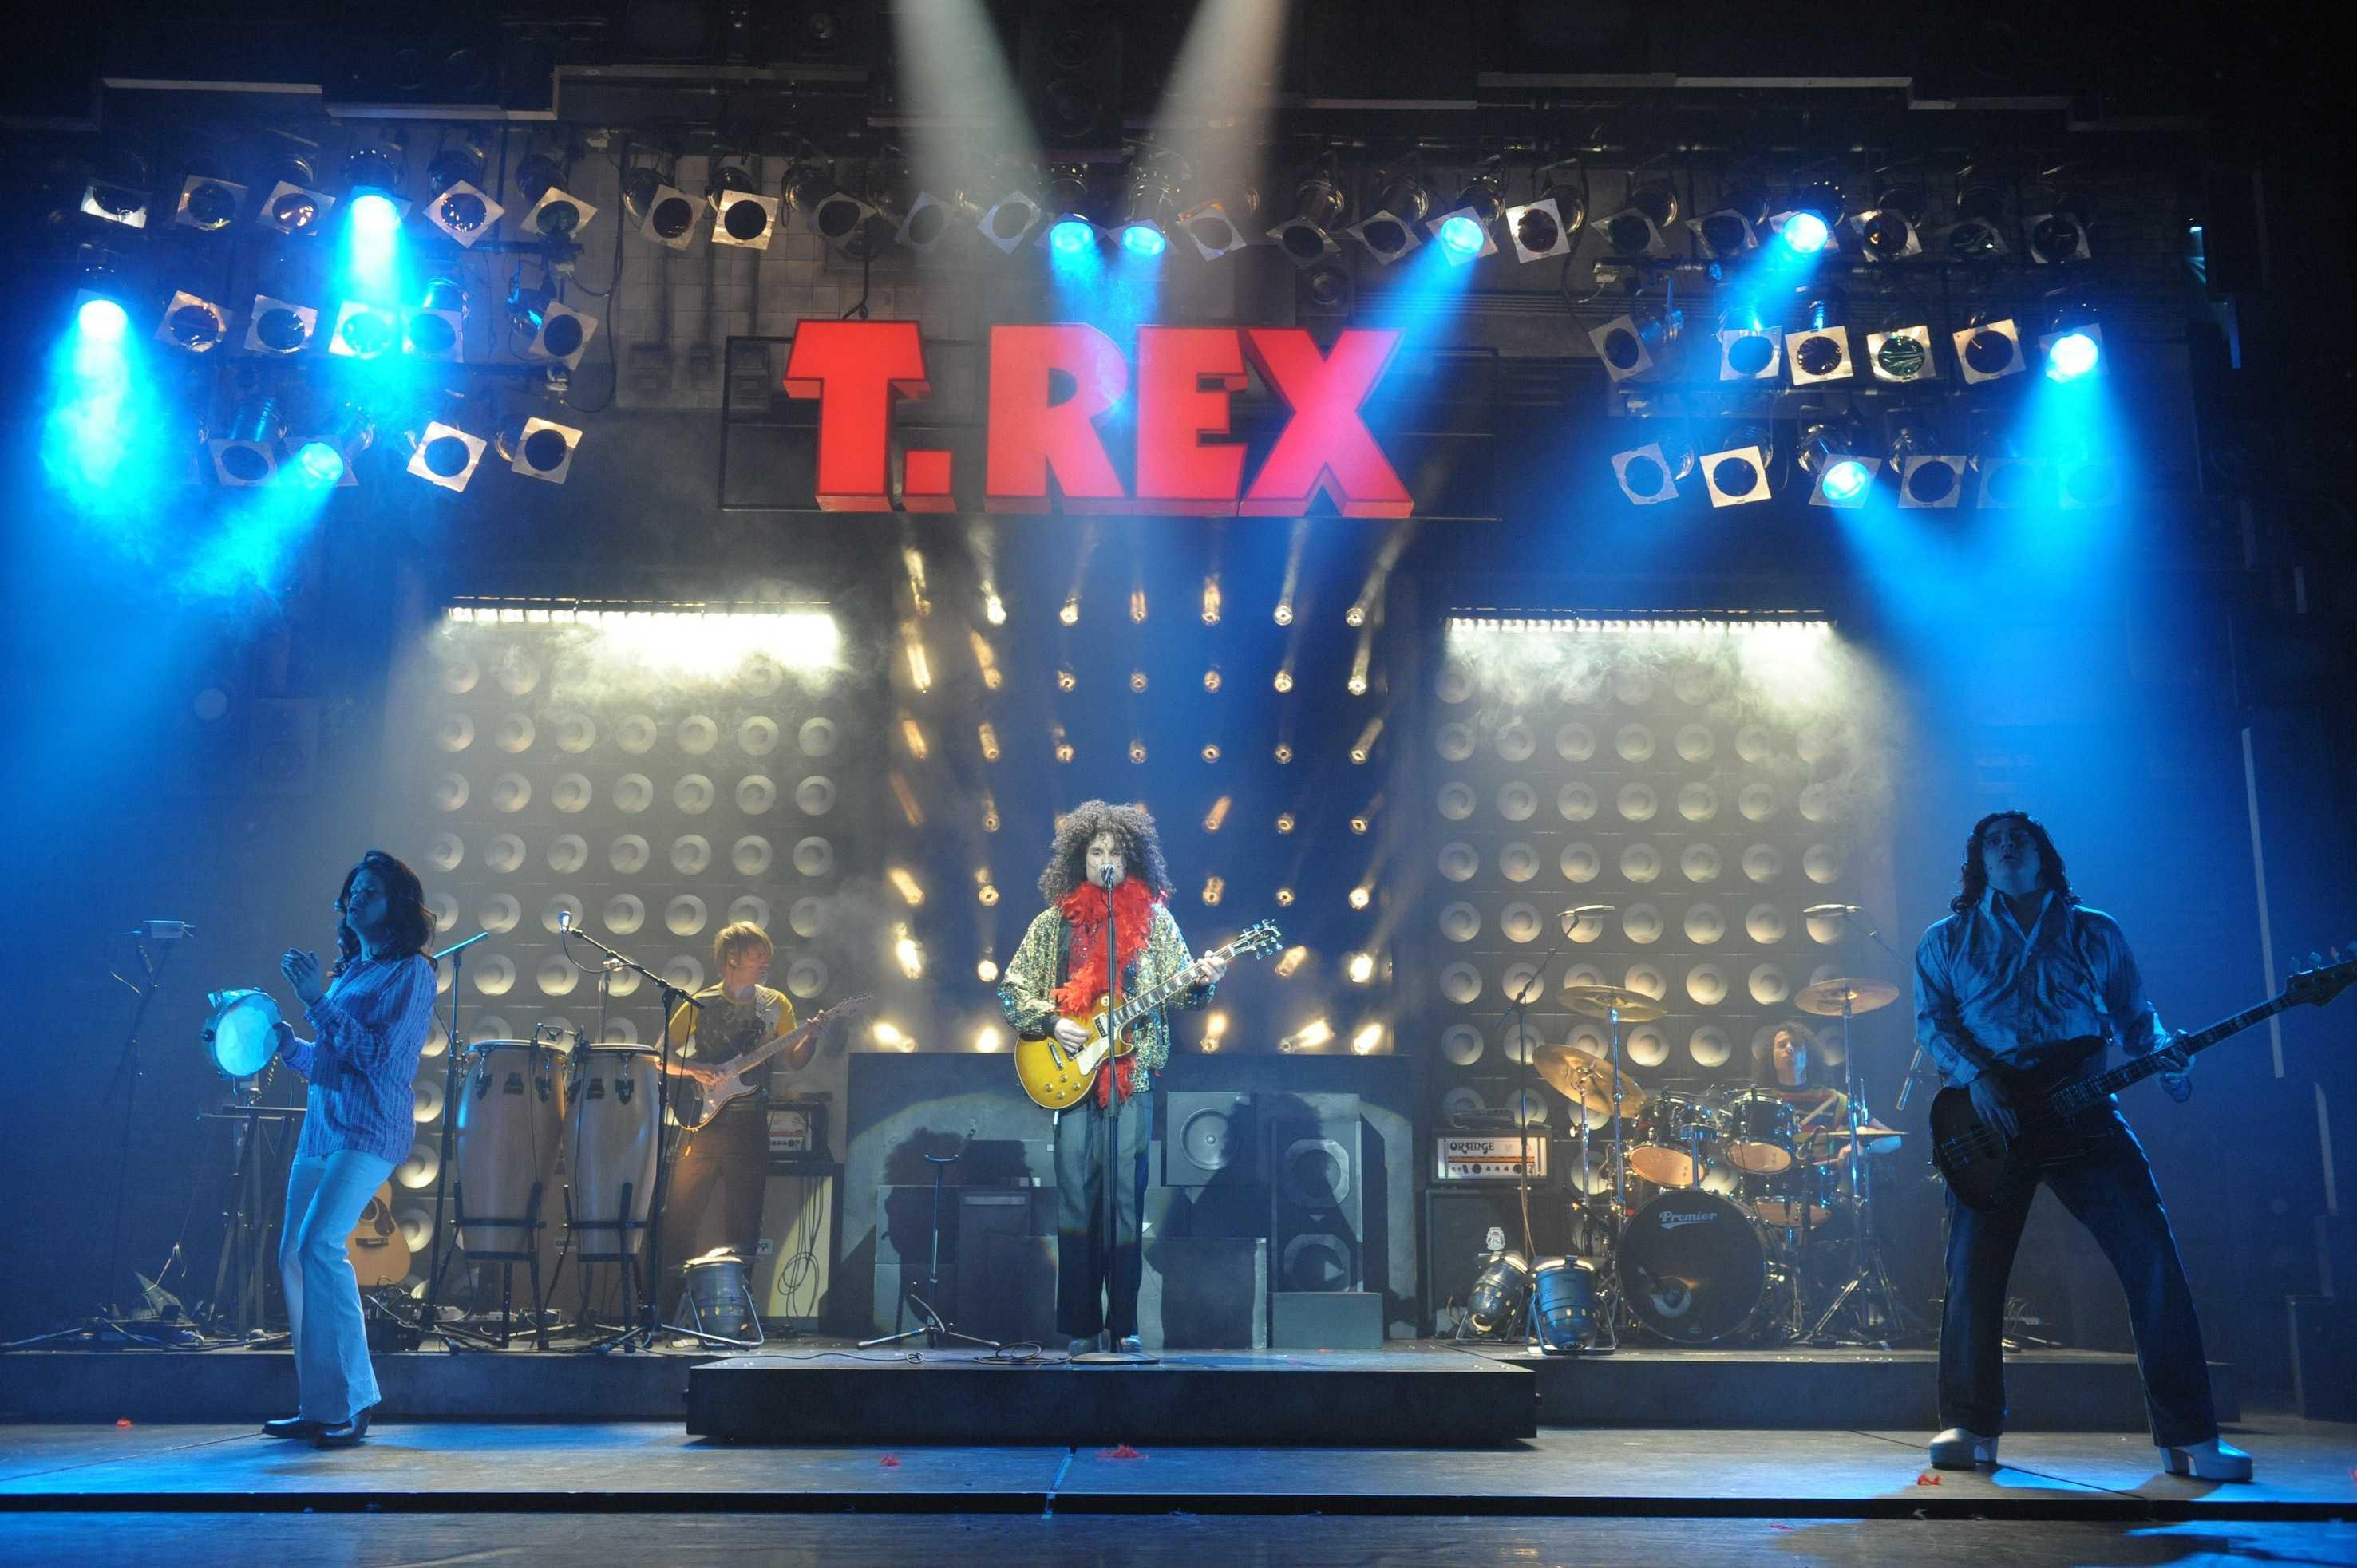 Image of the full stage with T REX sign